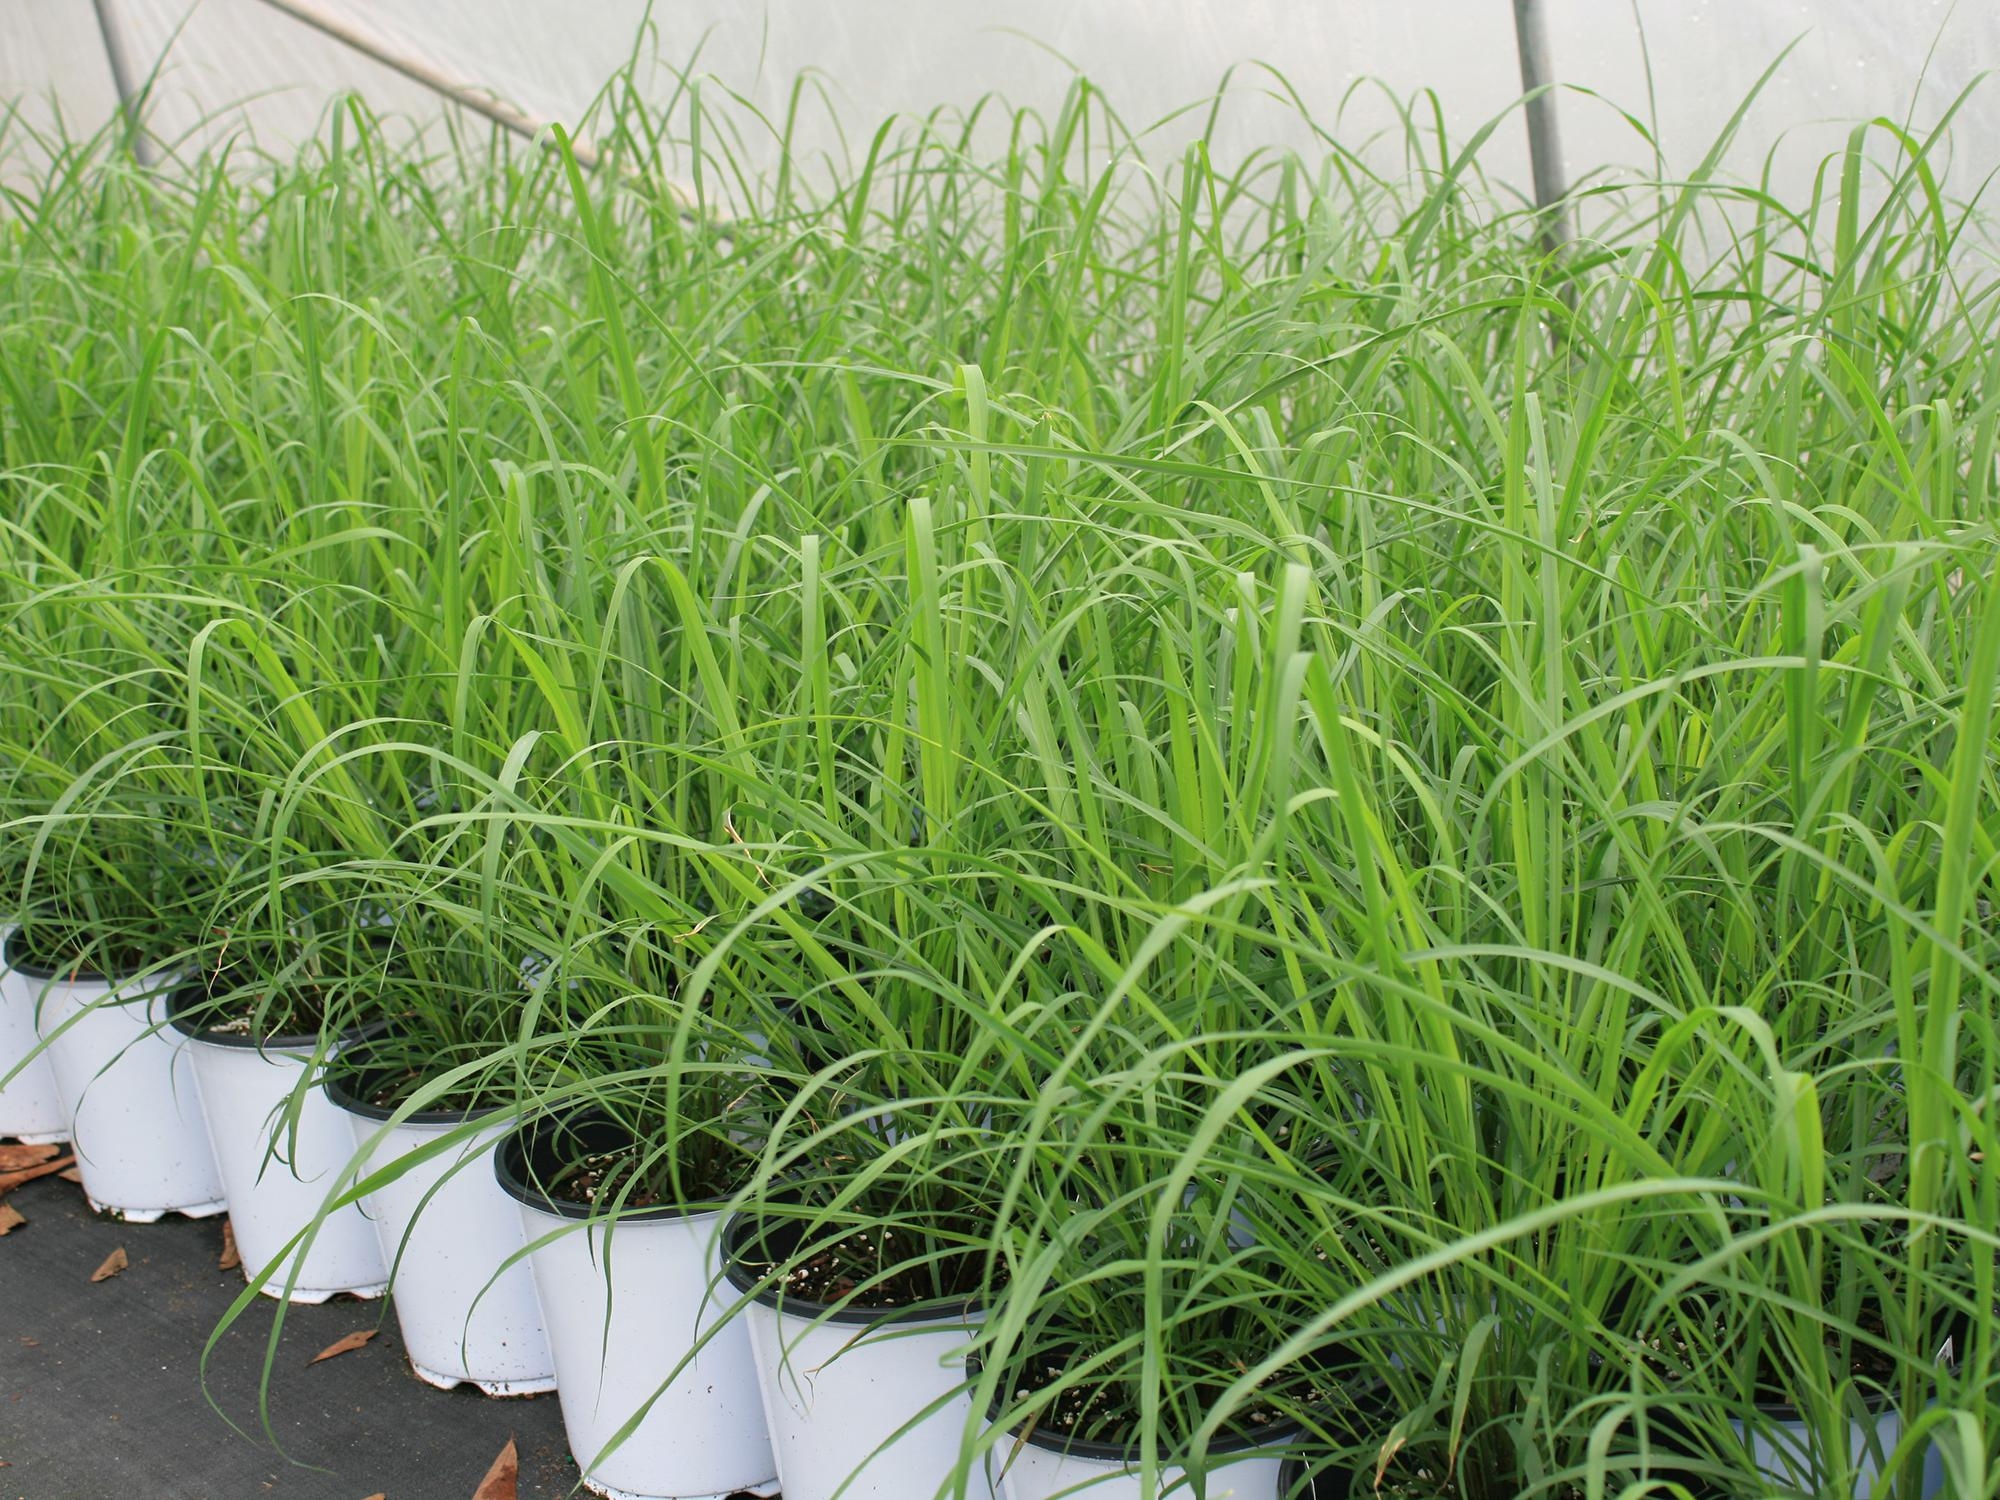 White flower pots containing green lemongrass are lined up on the ground.